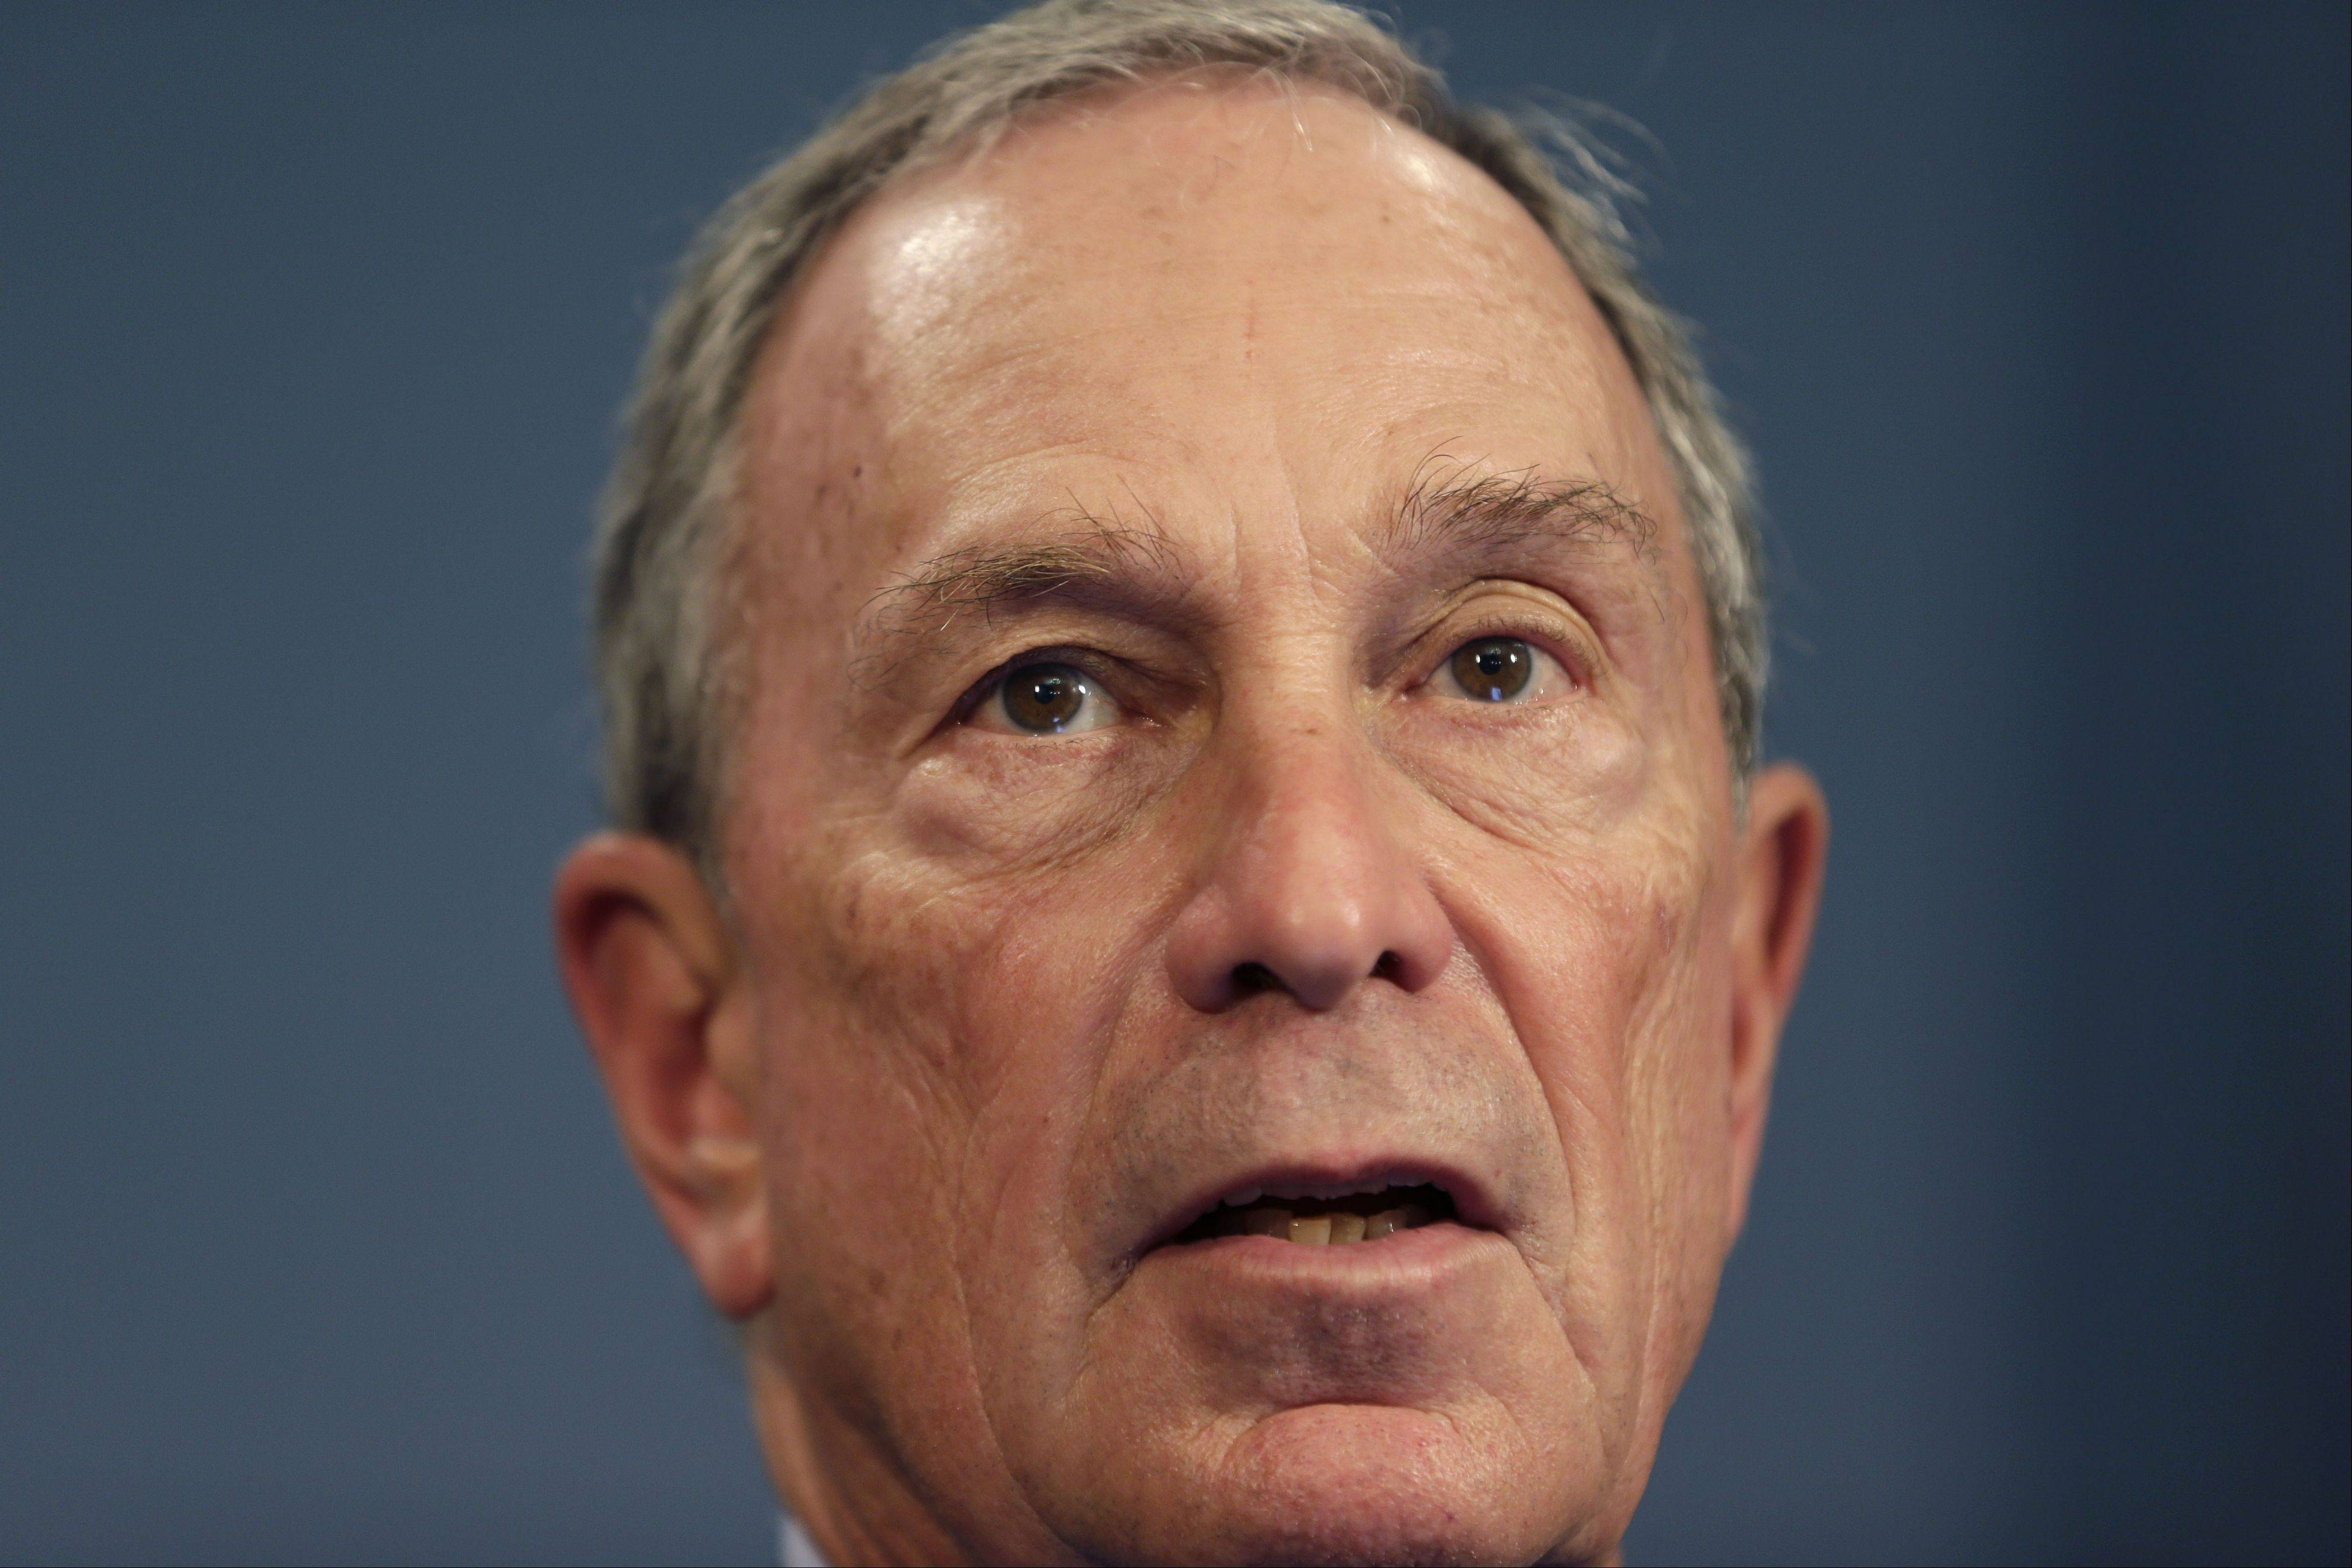 Associated Press New York City Mayor Michael Bloomberg speaks during a news conference in New York, Monday, Aug. 12, 2013. A U.S. judge has appointed a monitor to oversee the New York Police Department�s controversial stop-and-search policy, saying it intentionally discriminates based on race and has violated the rights of tens of thousands of people.